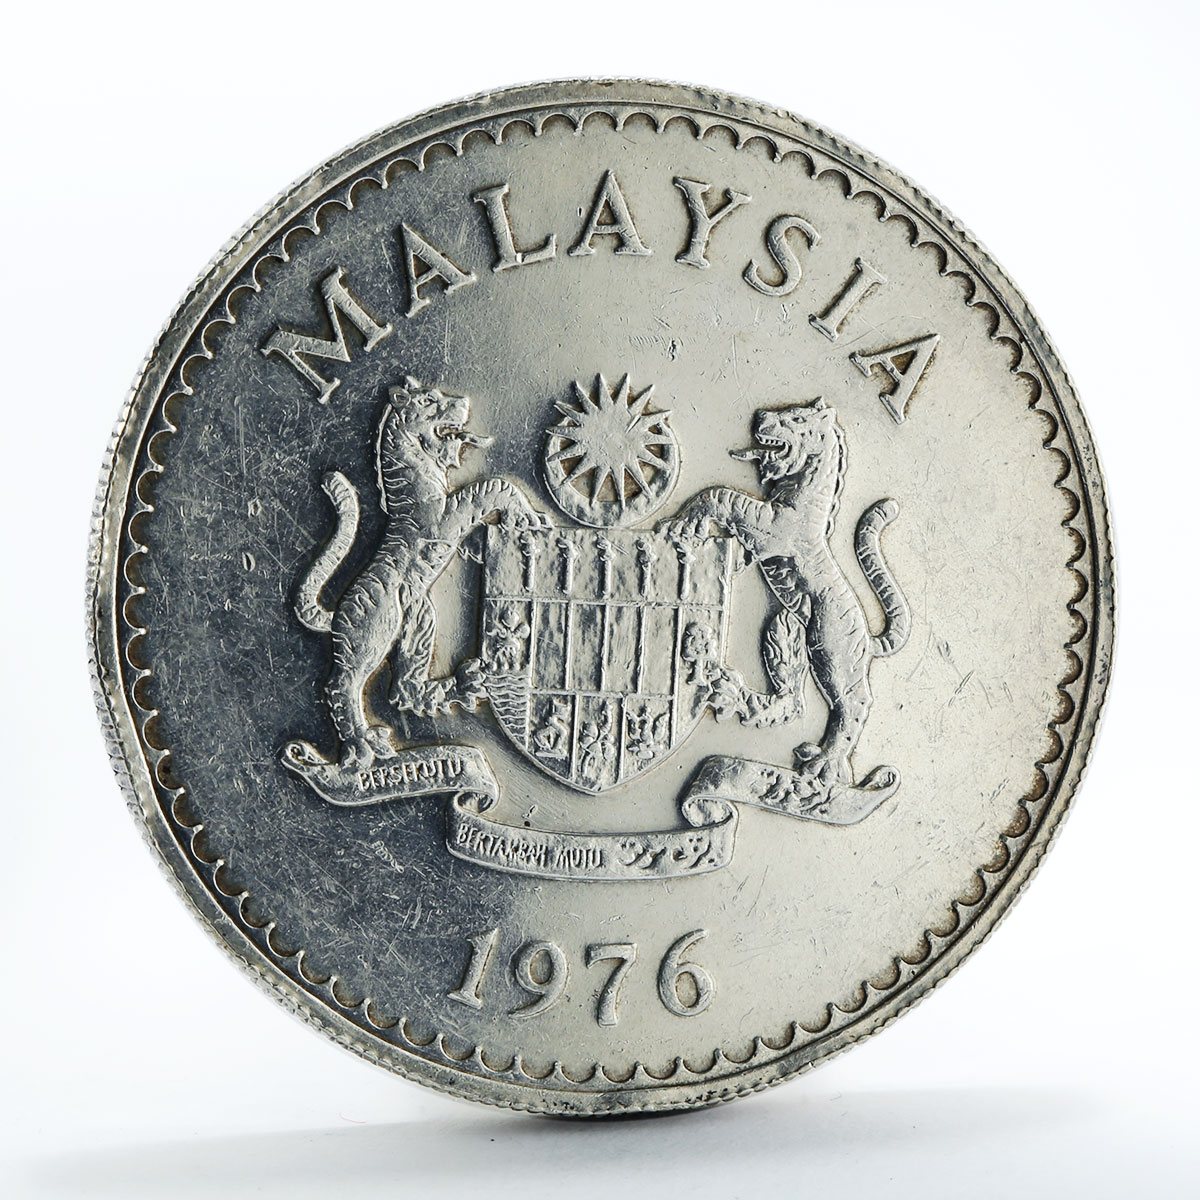 Malaysia 25 ringgit Conservation Hornbill silver coin 1976